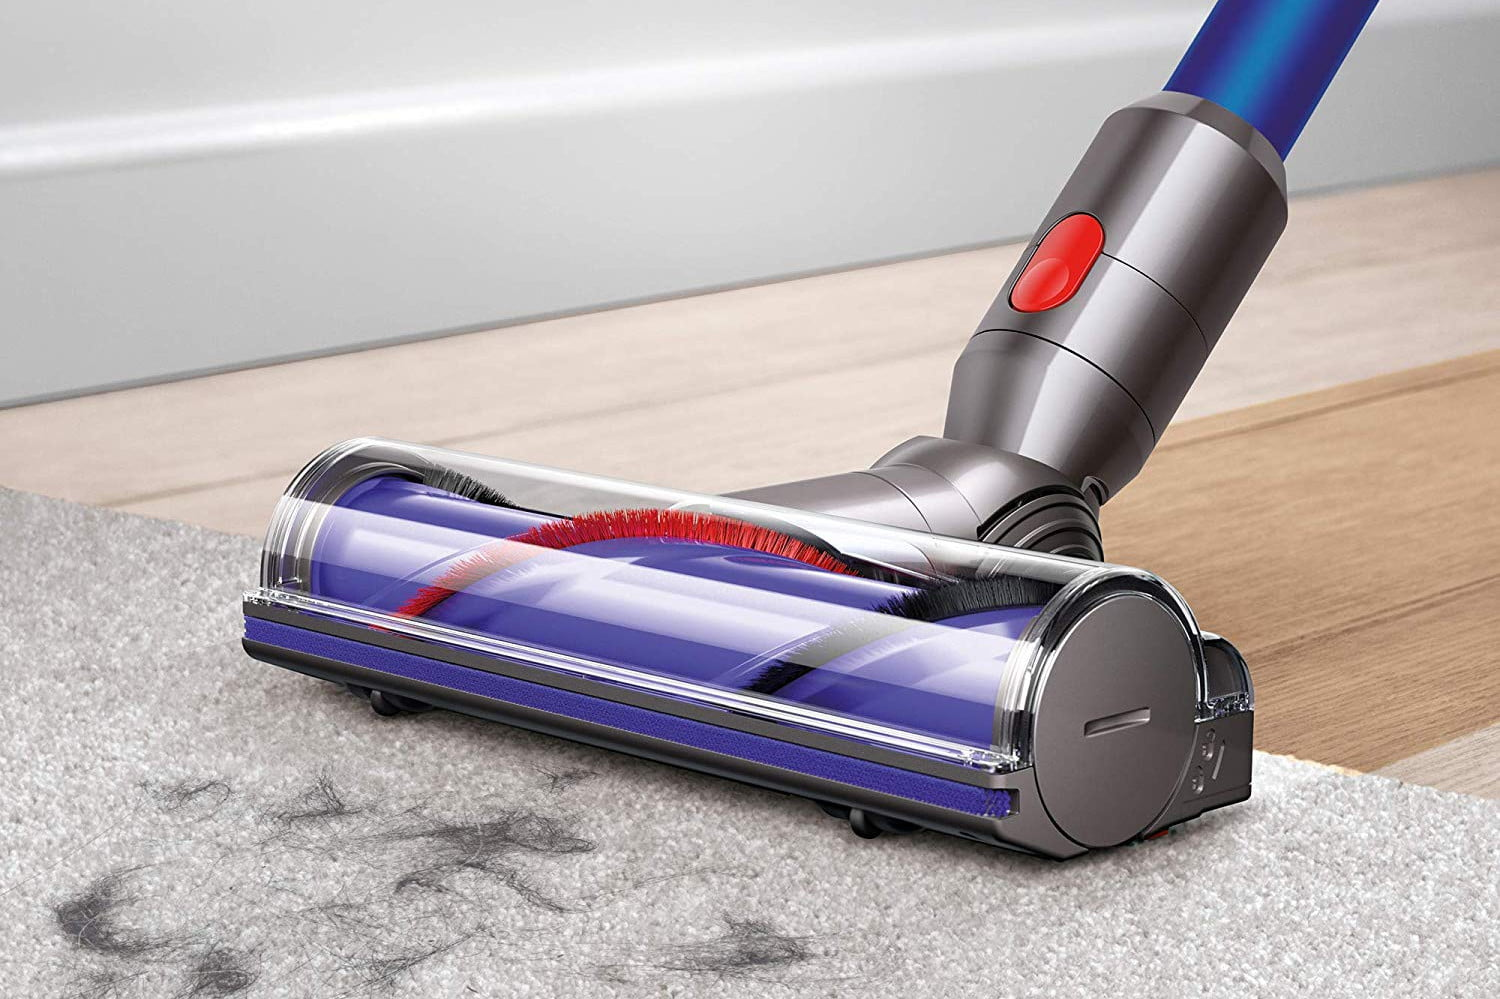 amazon price plummets on dyson v7 animal pro cordless vac with pet tools  3 1